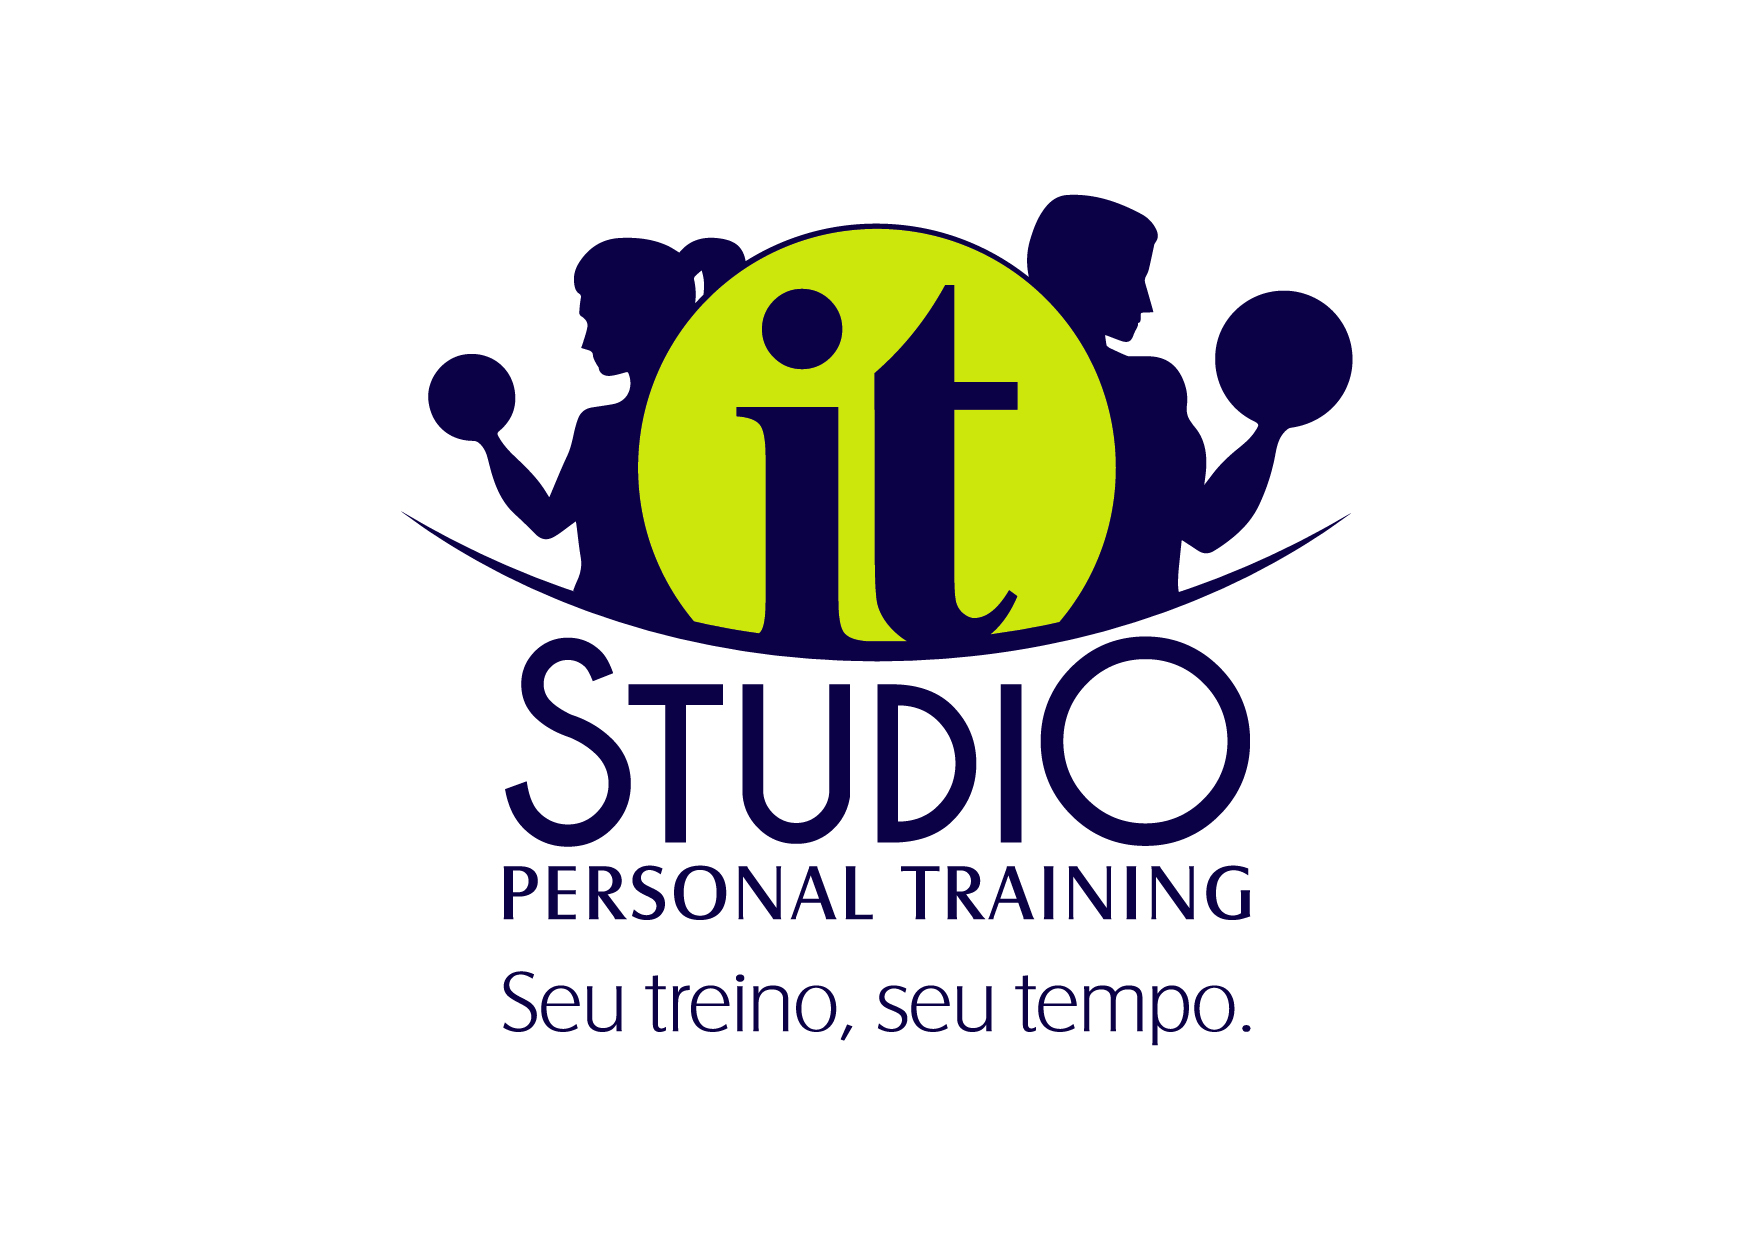 IT Studio Personal Training